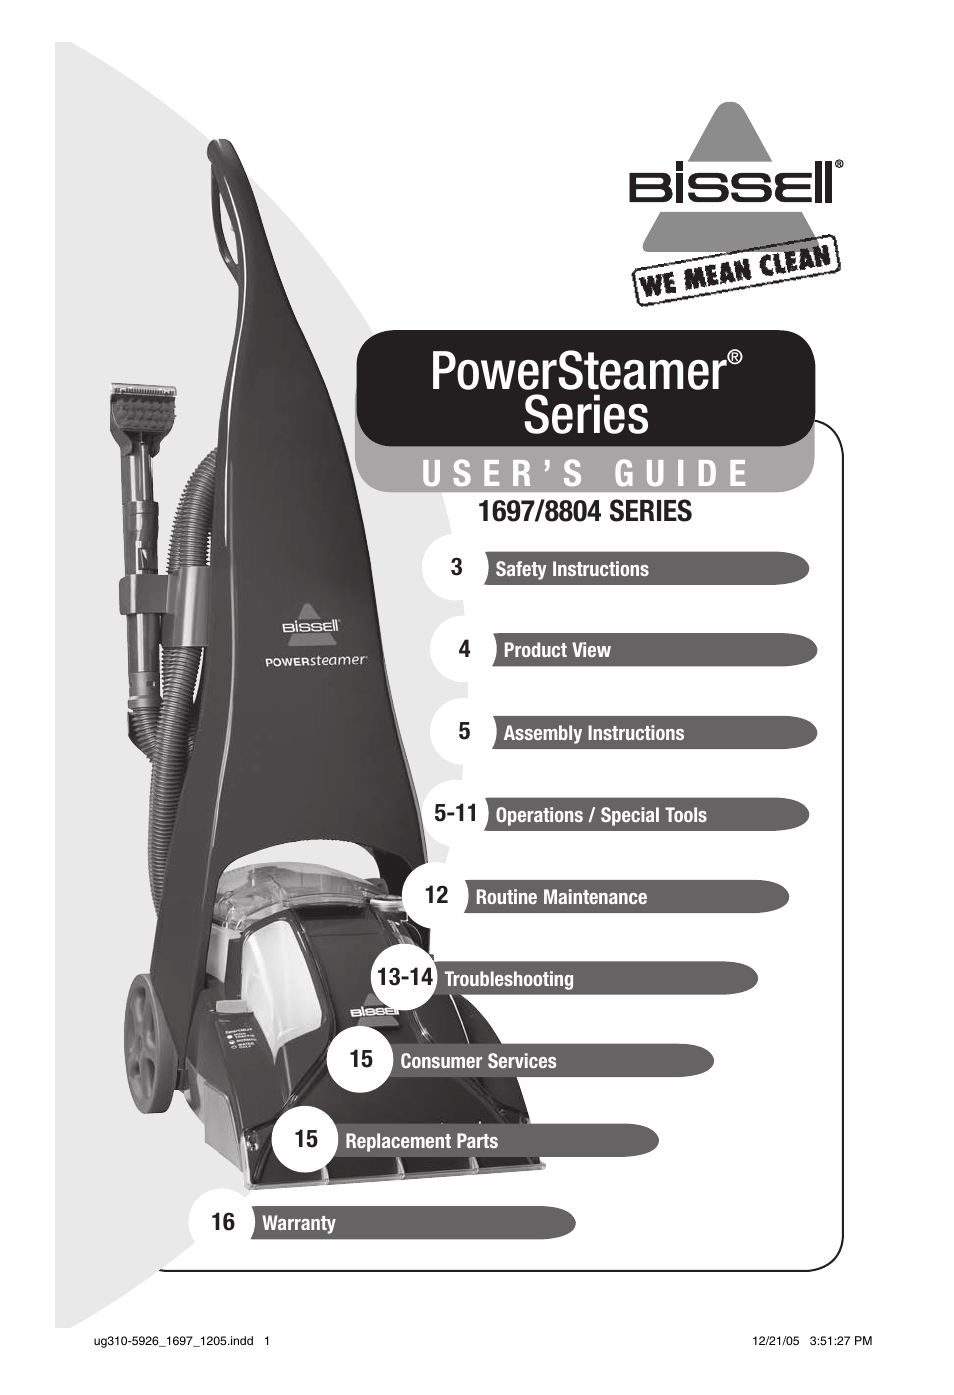 Bissell PowerSteamer 1697 series User Manual | 16 pages | Also for:  PowerSteamer 8804 series